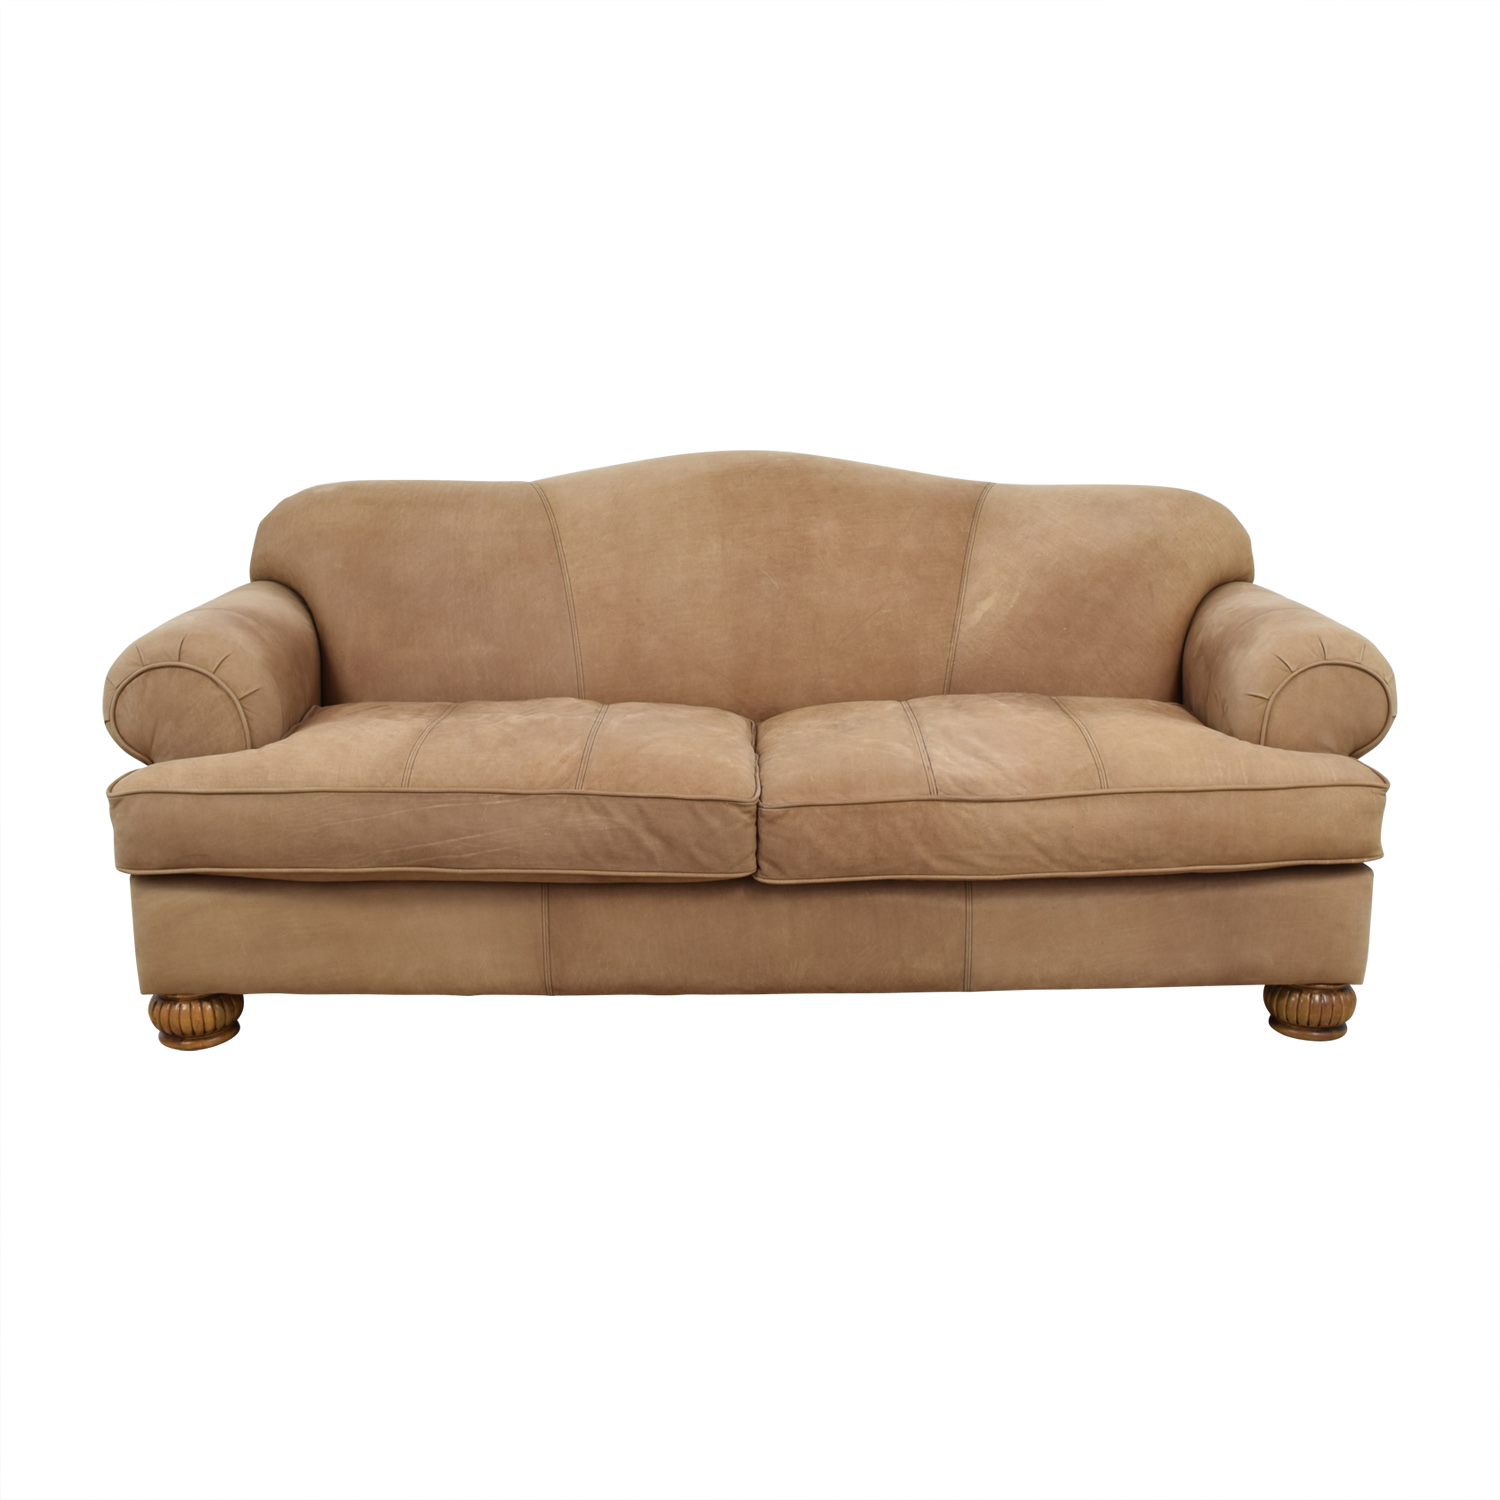 Suede Sofa Trend Suede Sofa 60 For Sofas And Couches Ideas With Thesofa